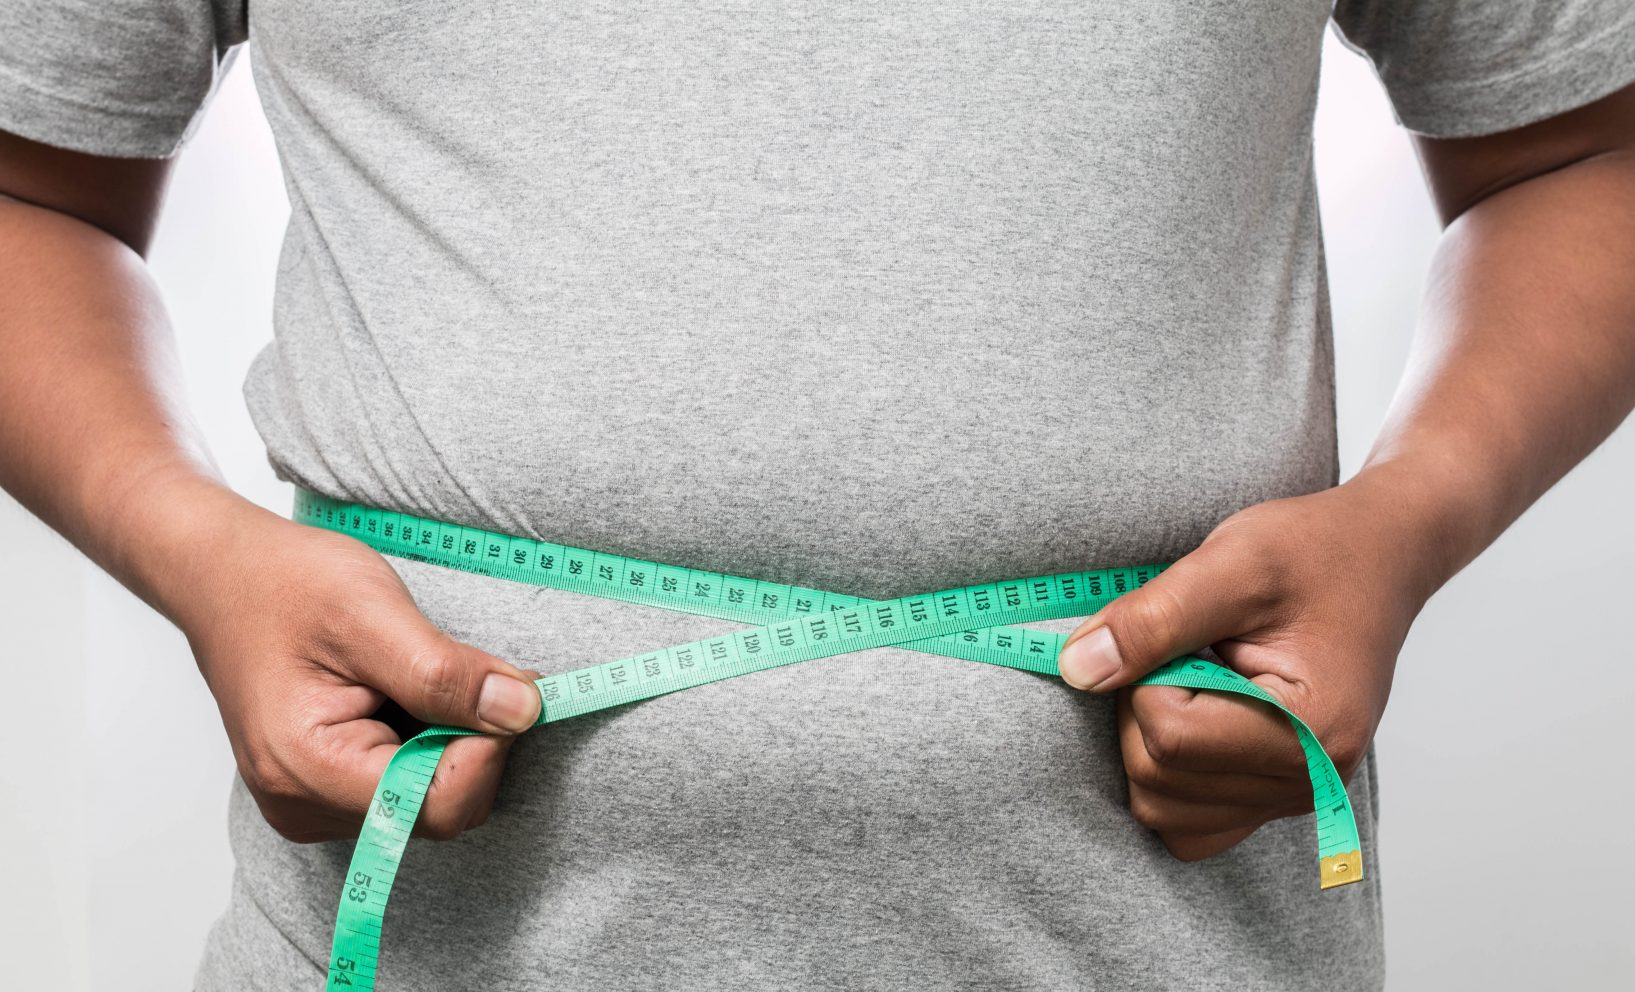 Arab Countries with the Highest Obesity Levels